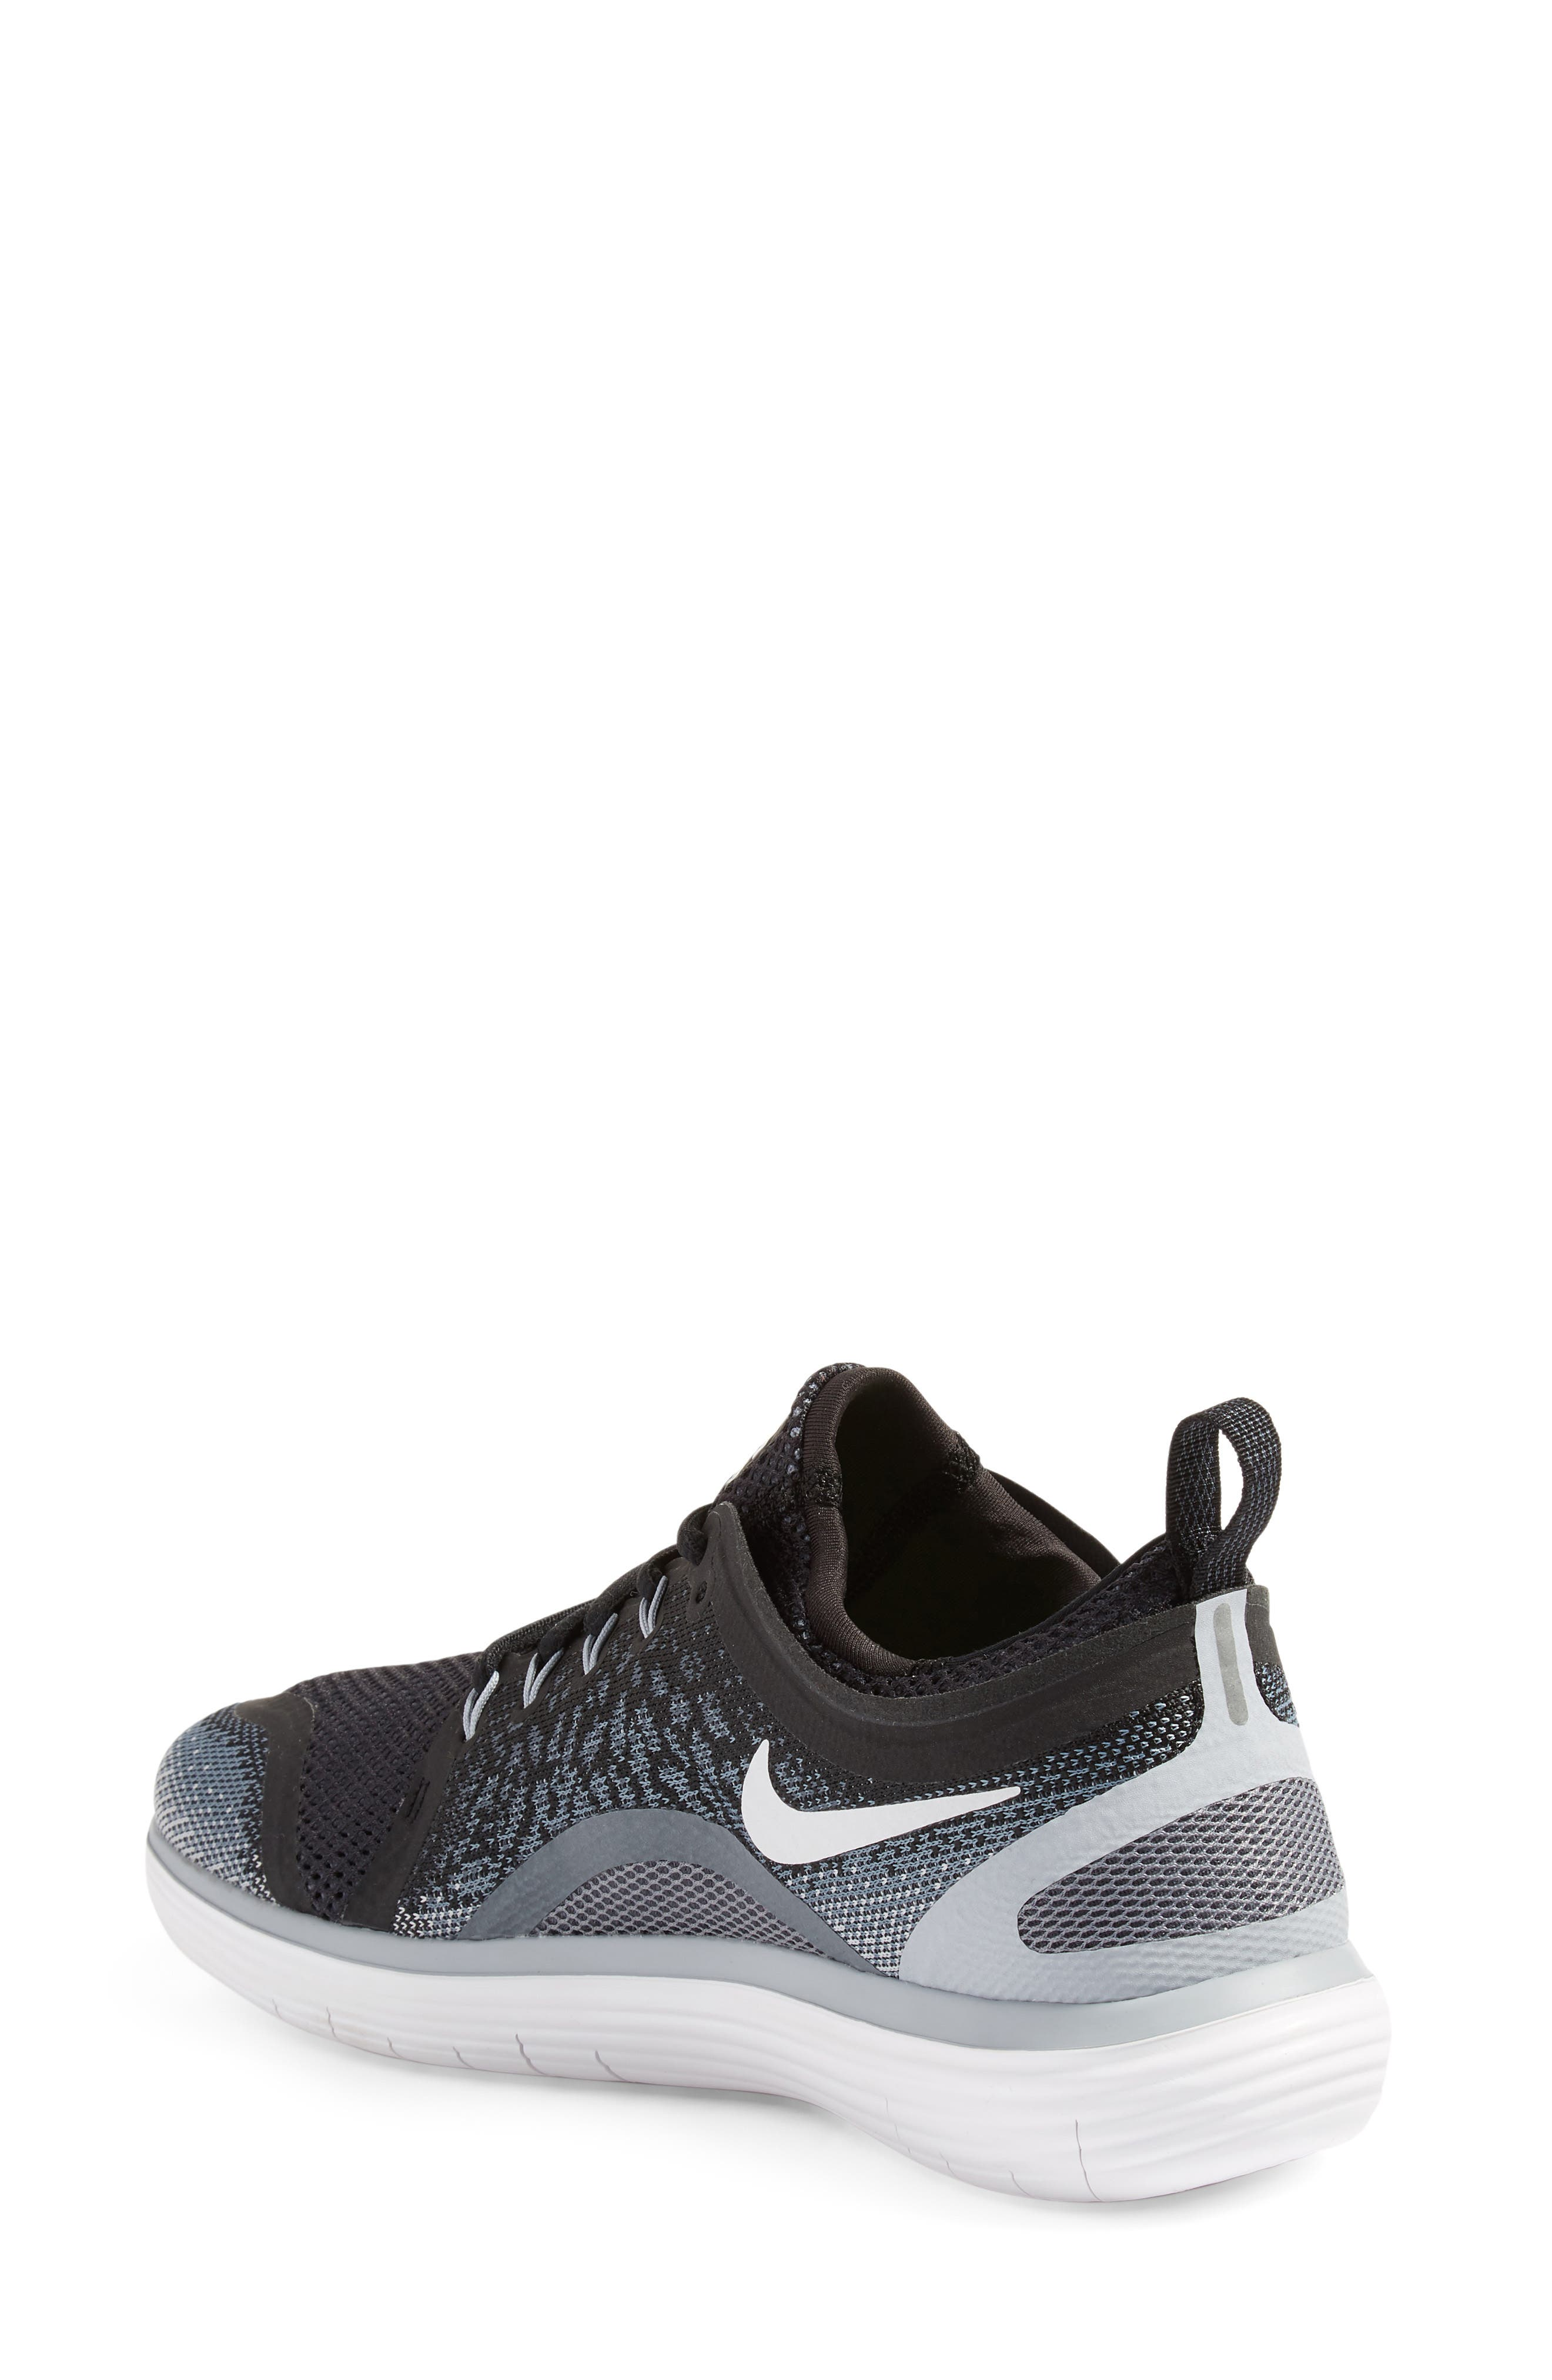 Free Run Distance 2 Running Shoe,                             Alternate thumbnail 2, color,                             001